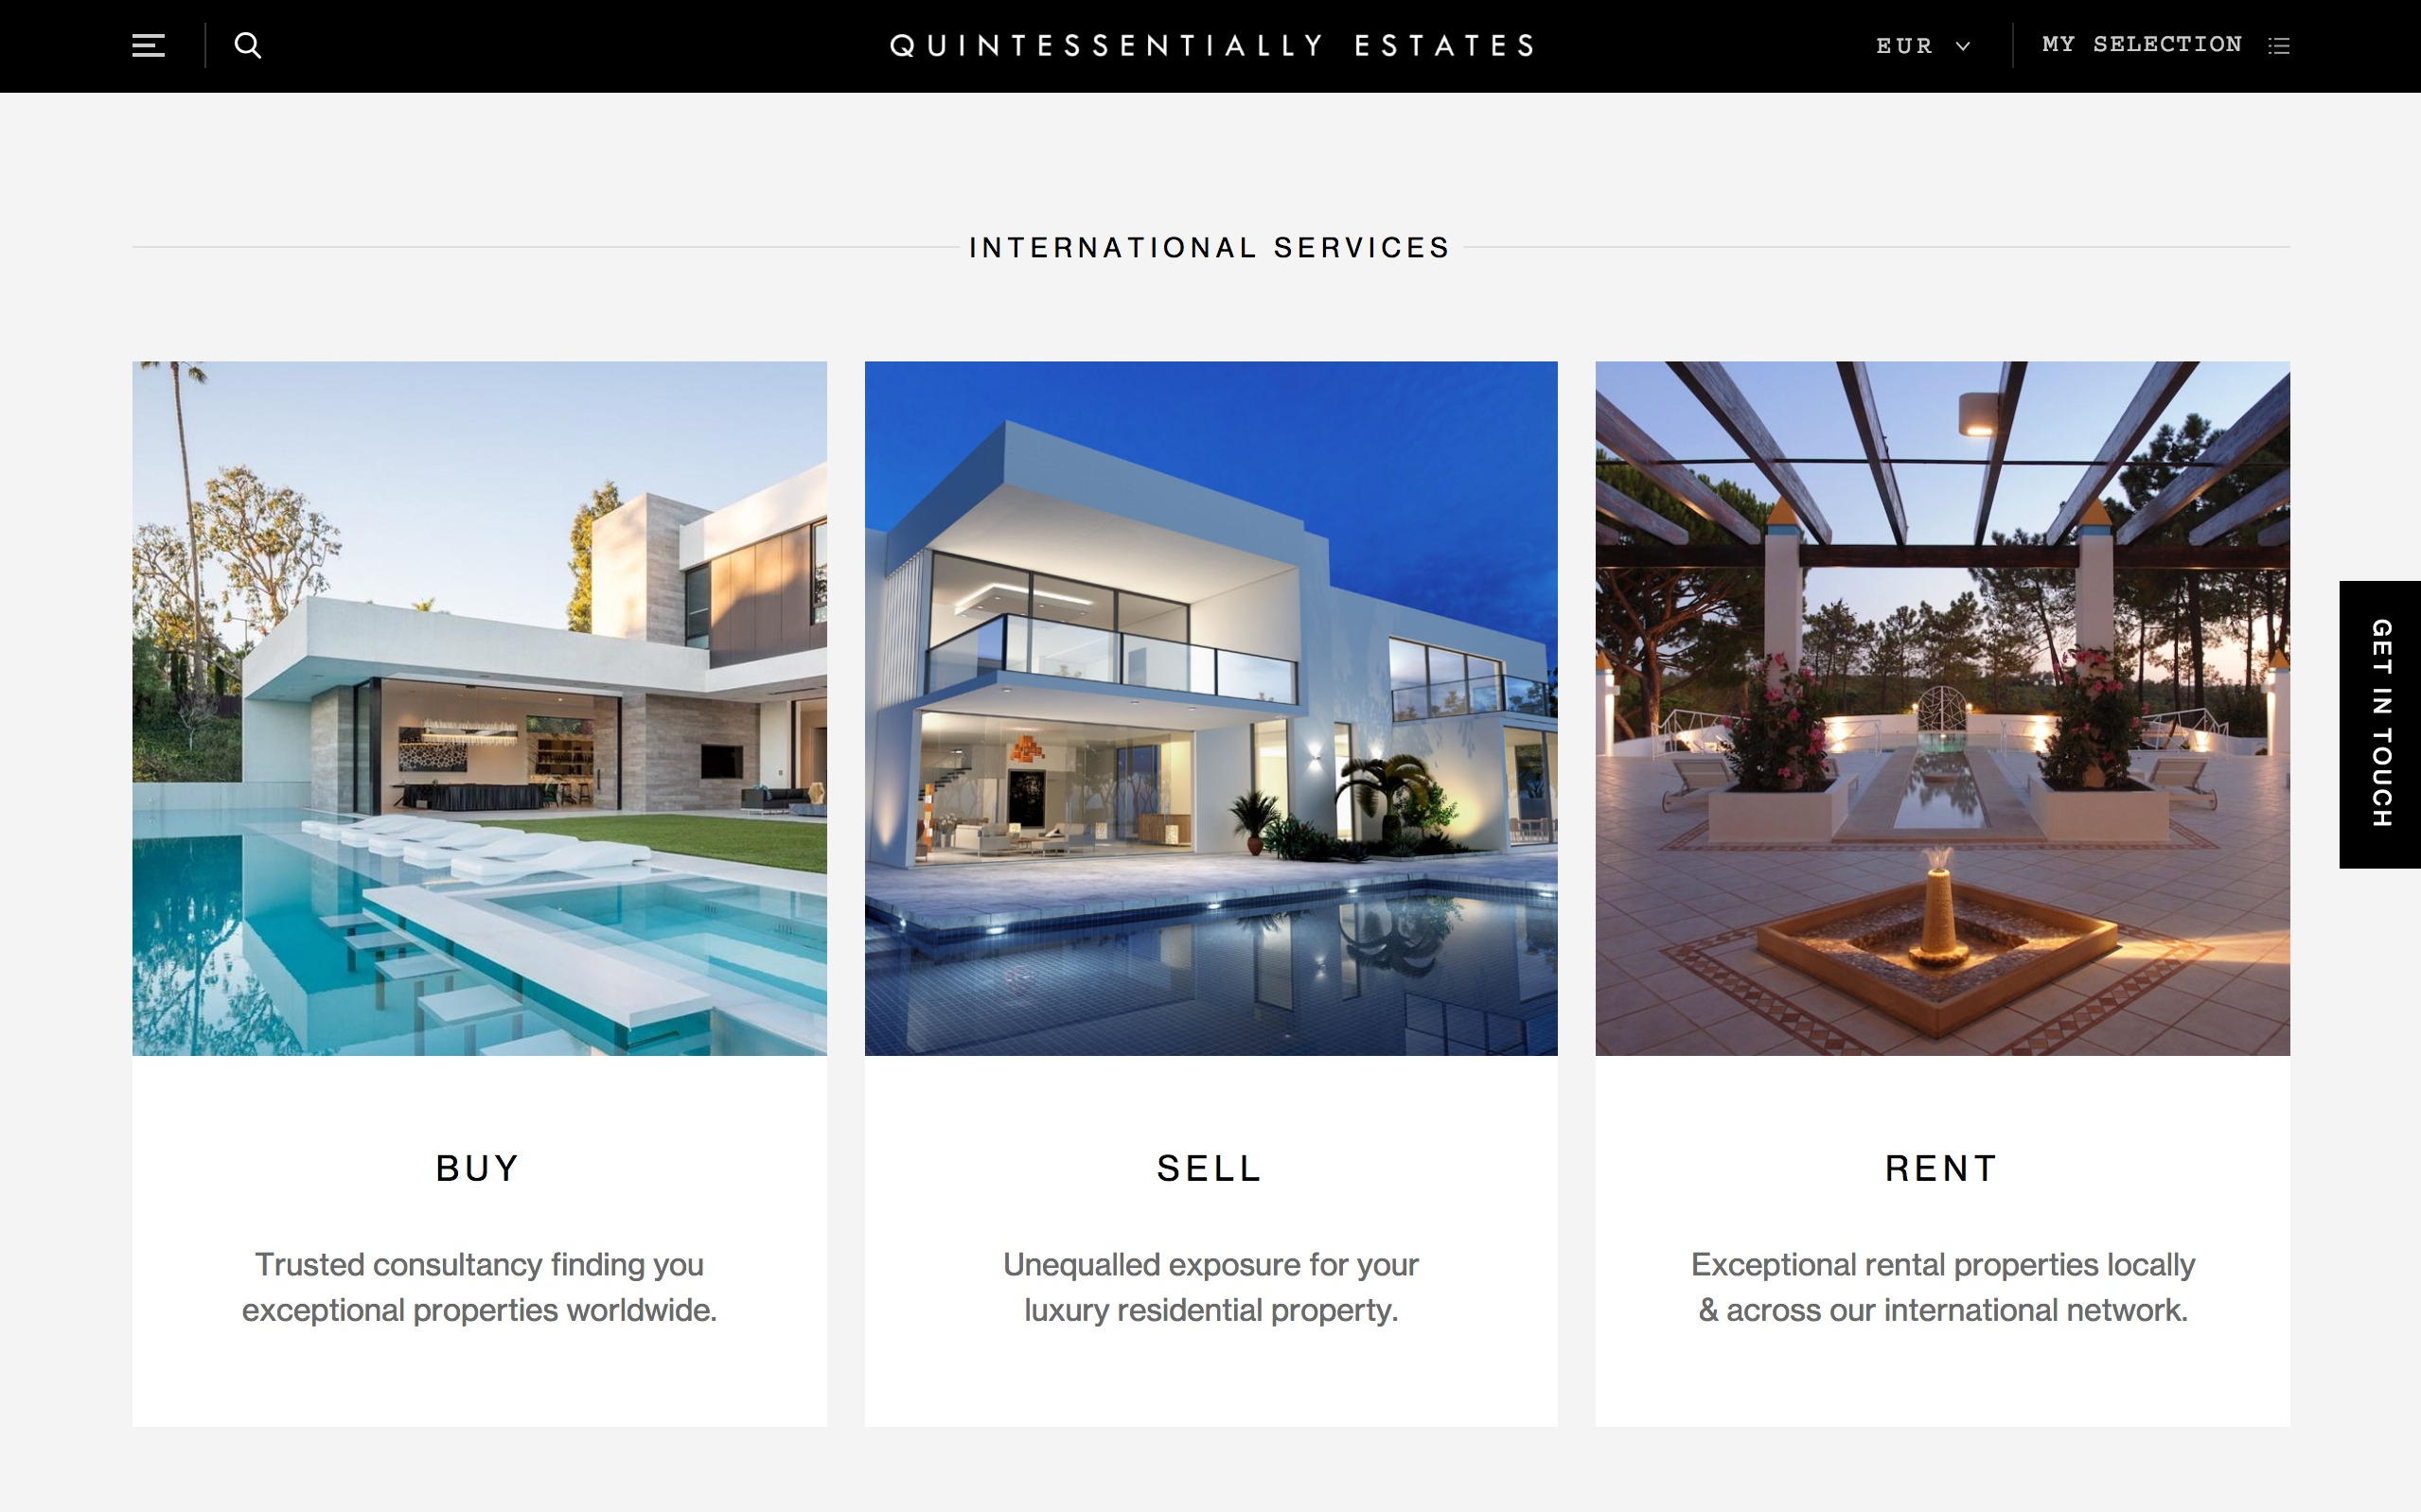 best architecture firm websites. quintessentially estates